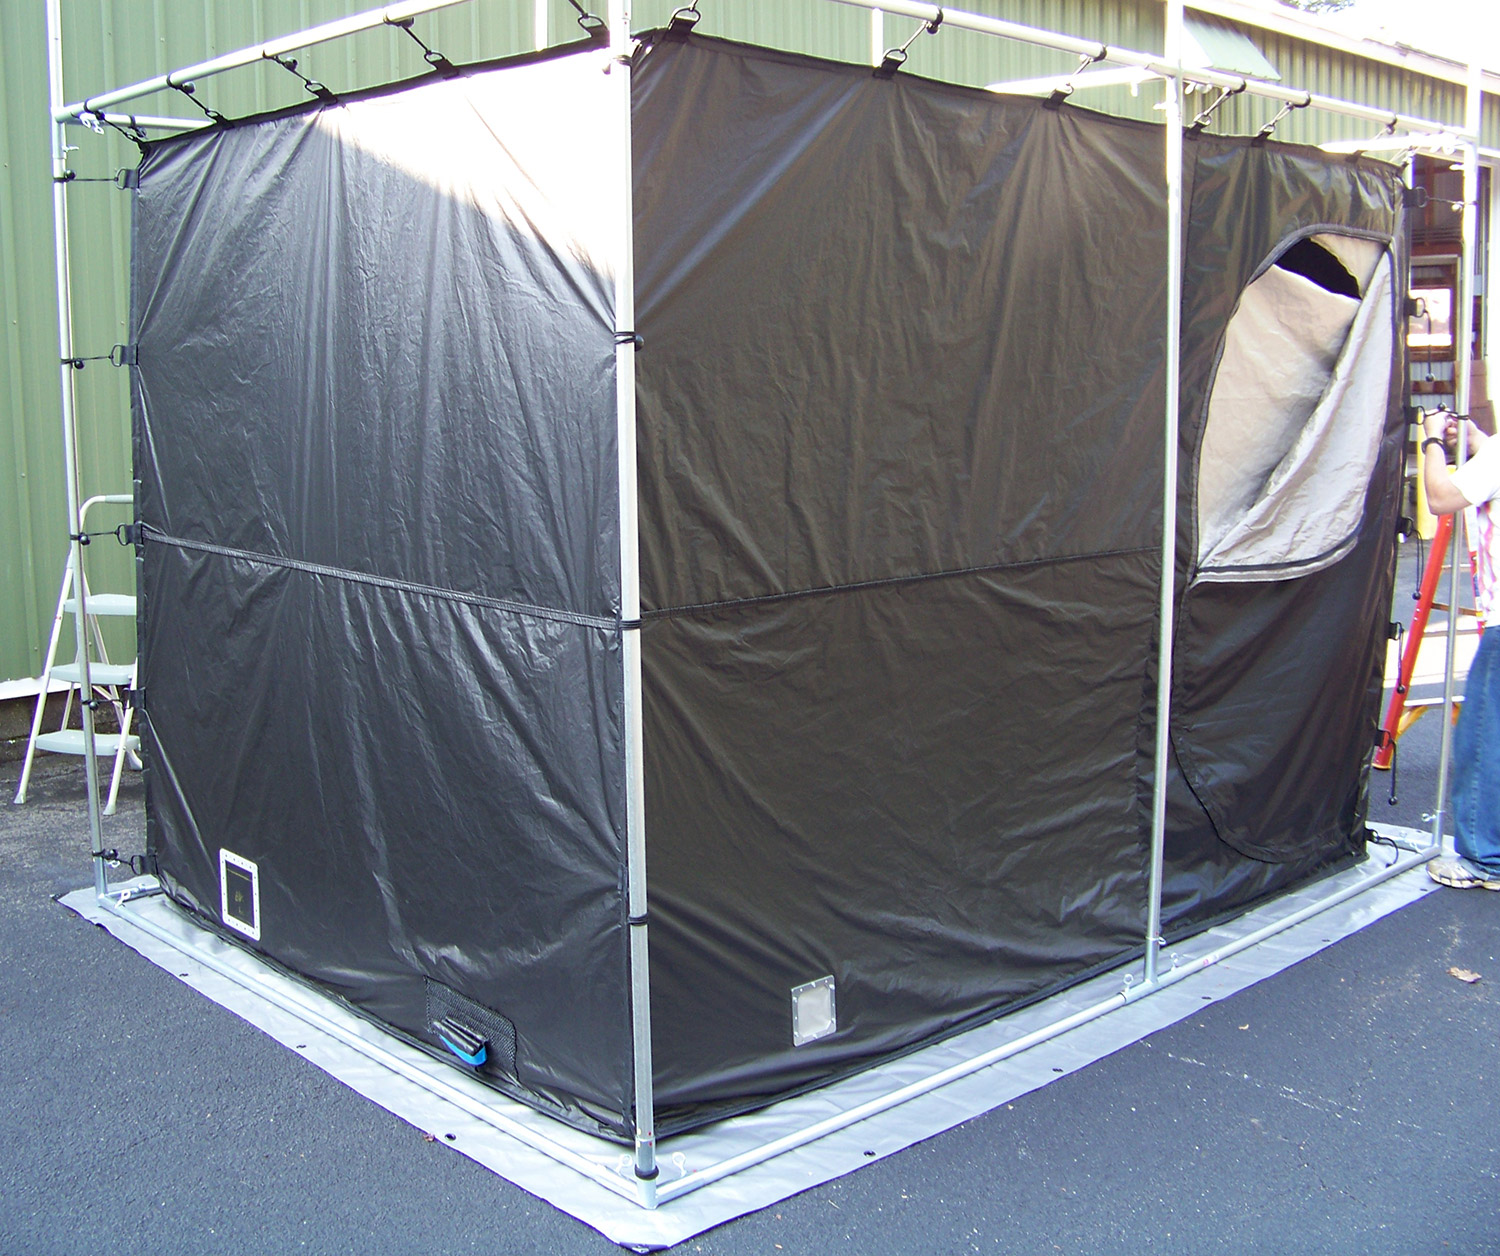 Rent V Technical Textiles 8447 RF Shielded Enclosure 4' x 4' x 7' 30 MHz - 10 GHz